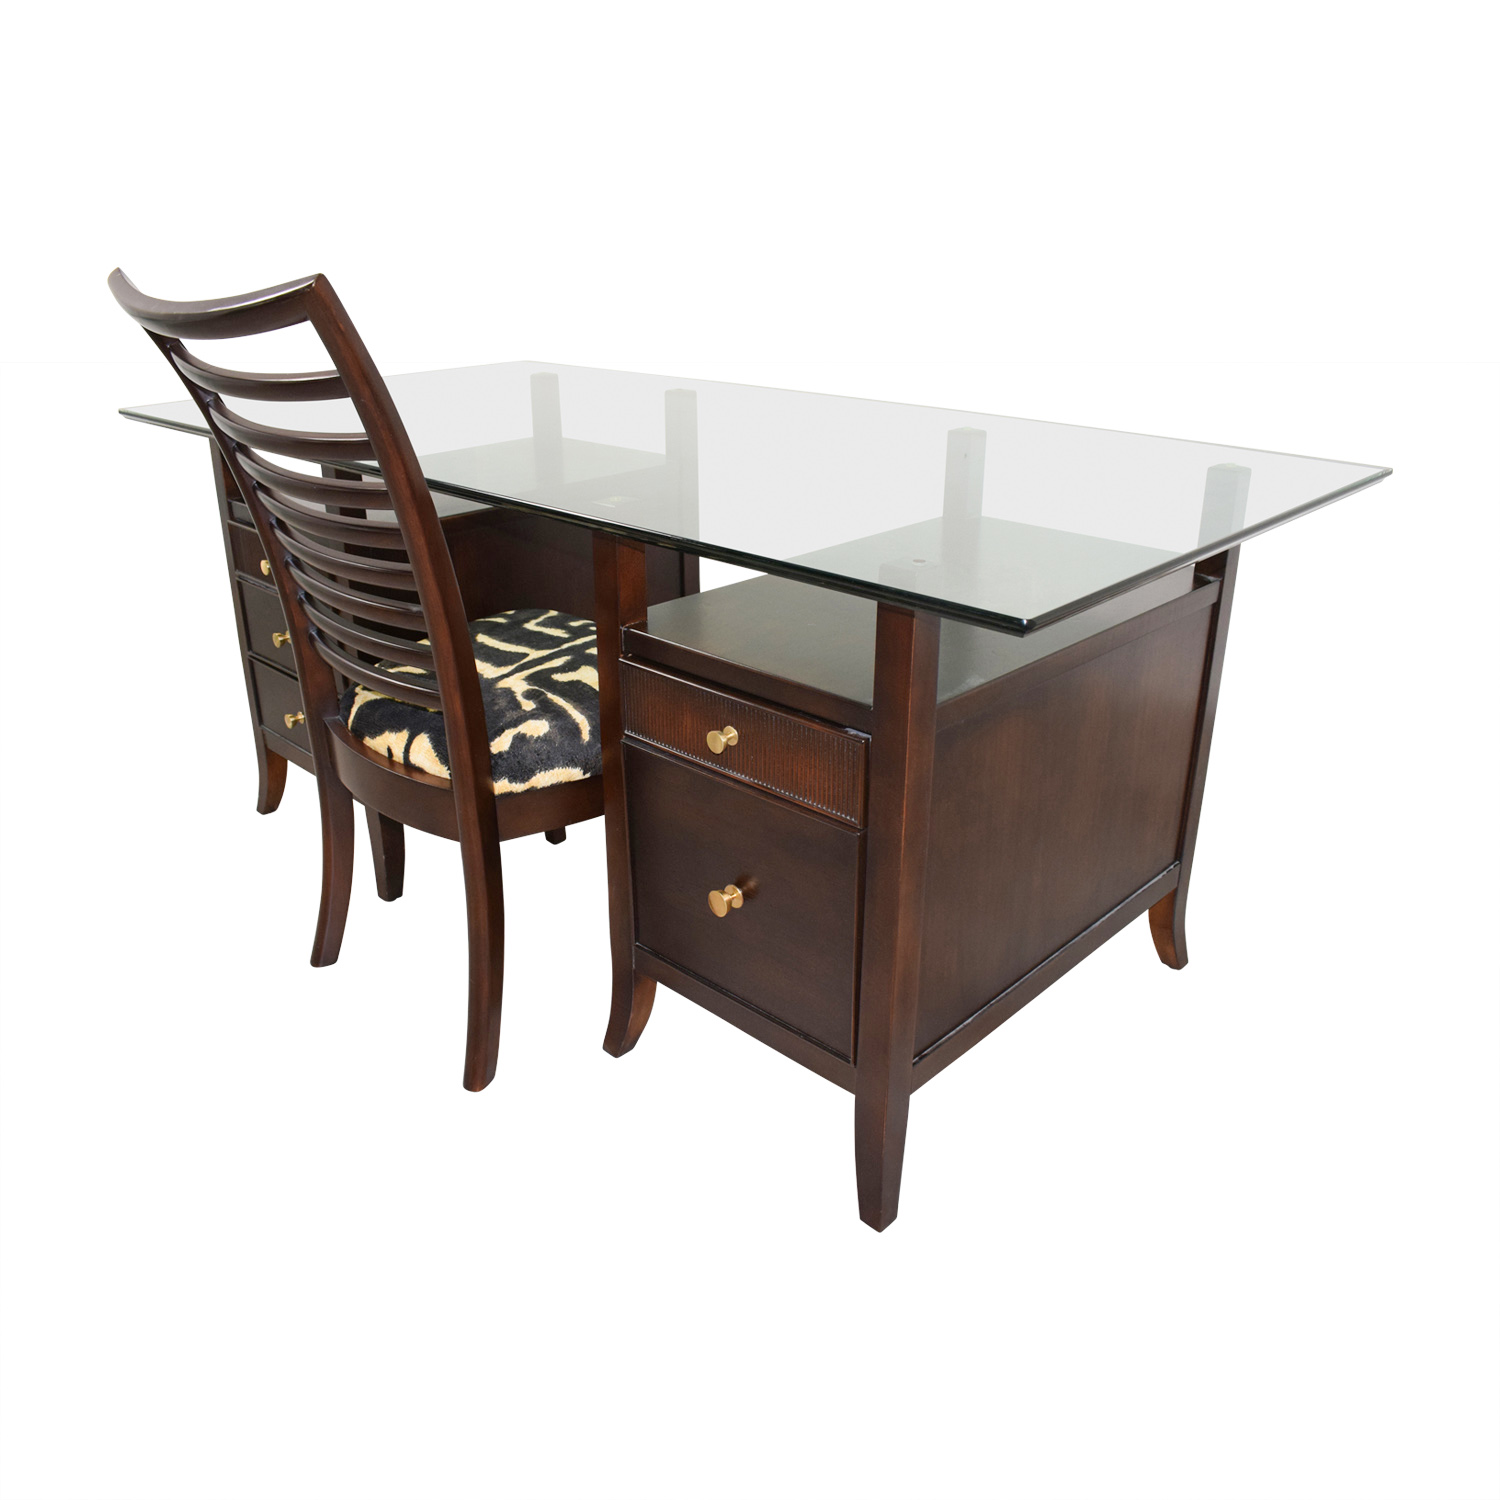 Pleasant 90 Off Stanley Furniture Stanley Furniture Midtown Glass Top Five Drawer Desk With Chair Tables Dailytribune Chair Design For Home Dailytribuneorg